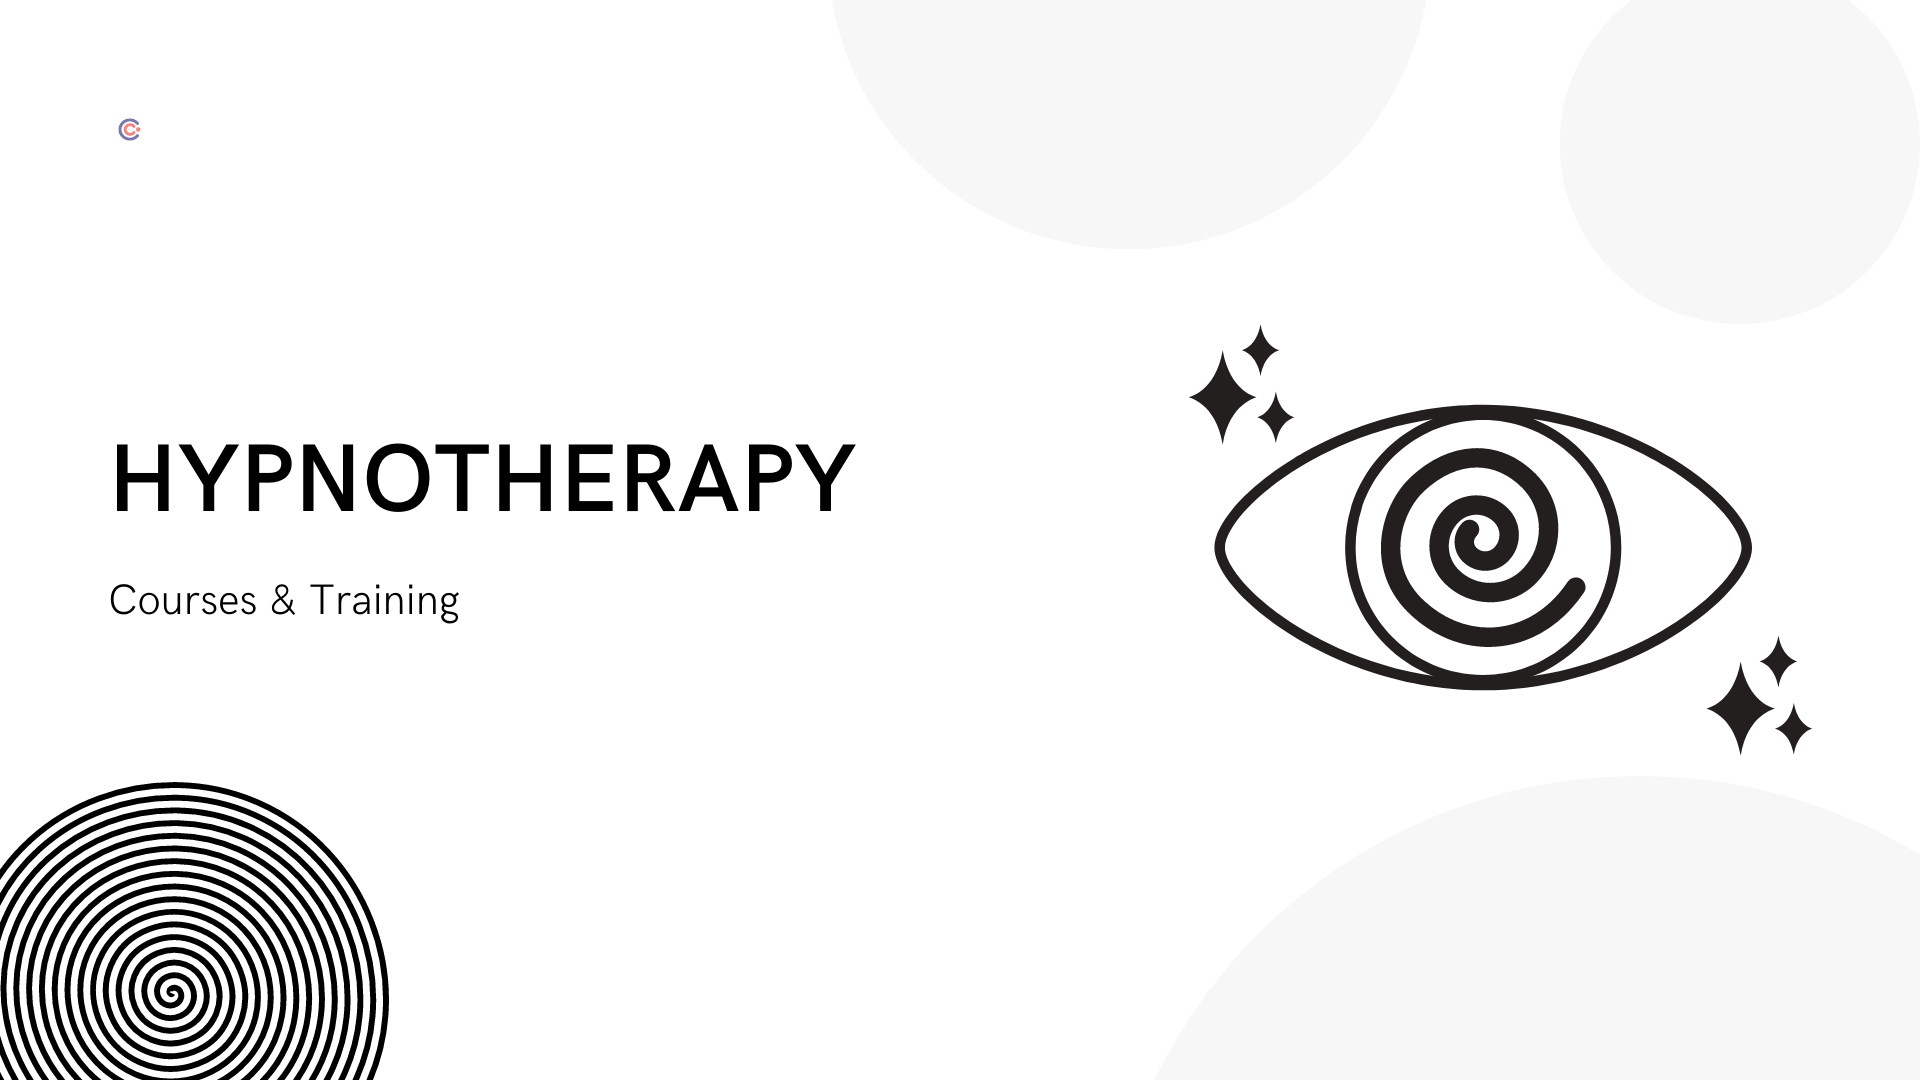 5 Best Hypnotherapy Courses & Training - Learn Hypnotherapy Online